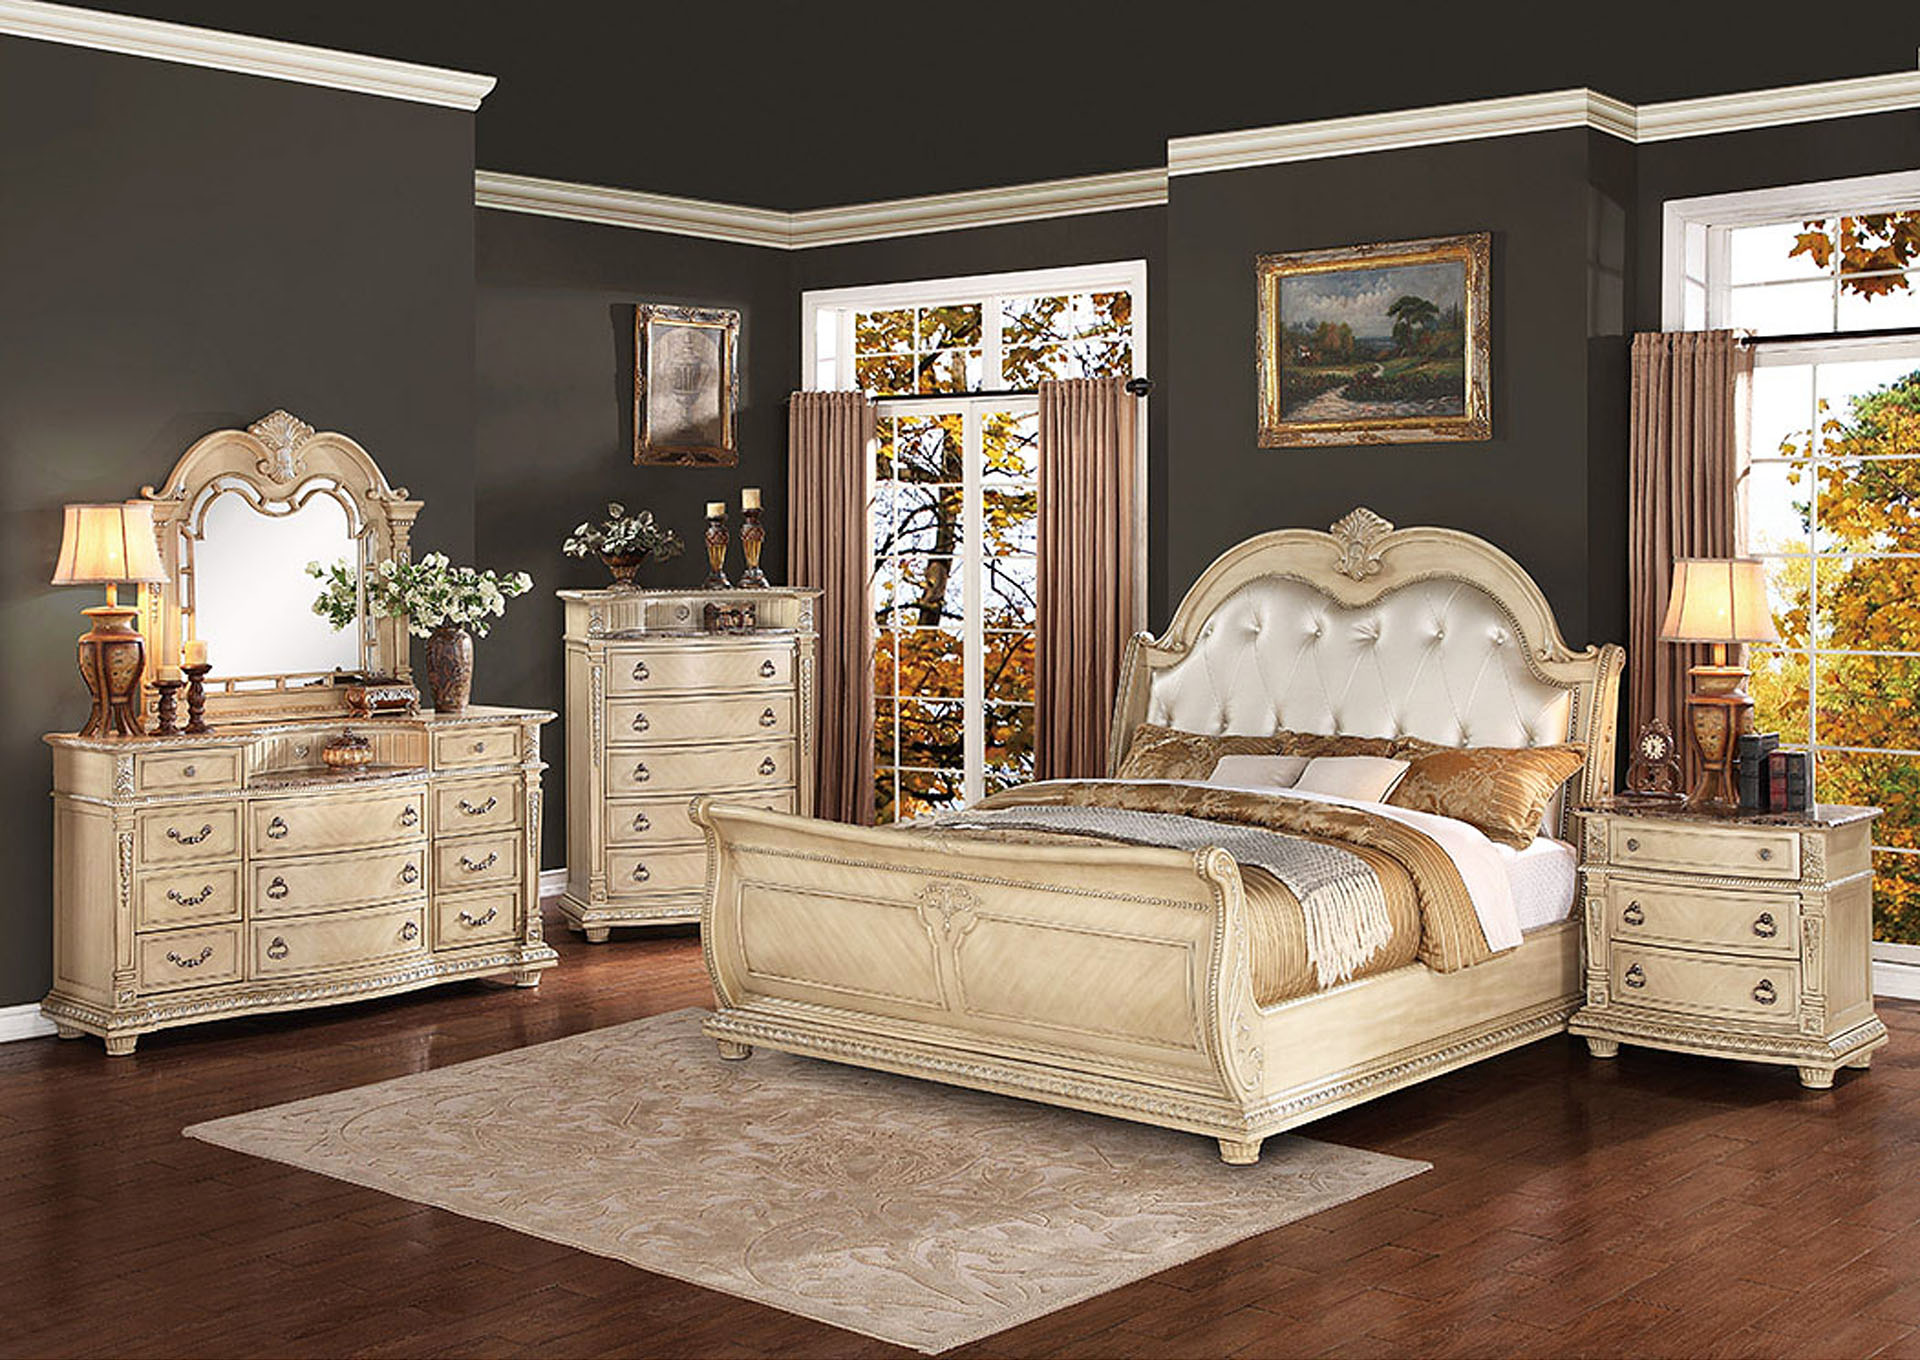 Hot Buys Furniture >> Hot Buys Furniture | Snellville, GA Palace II White Queen